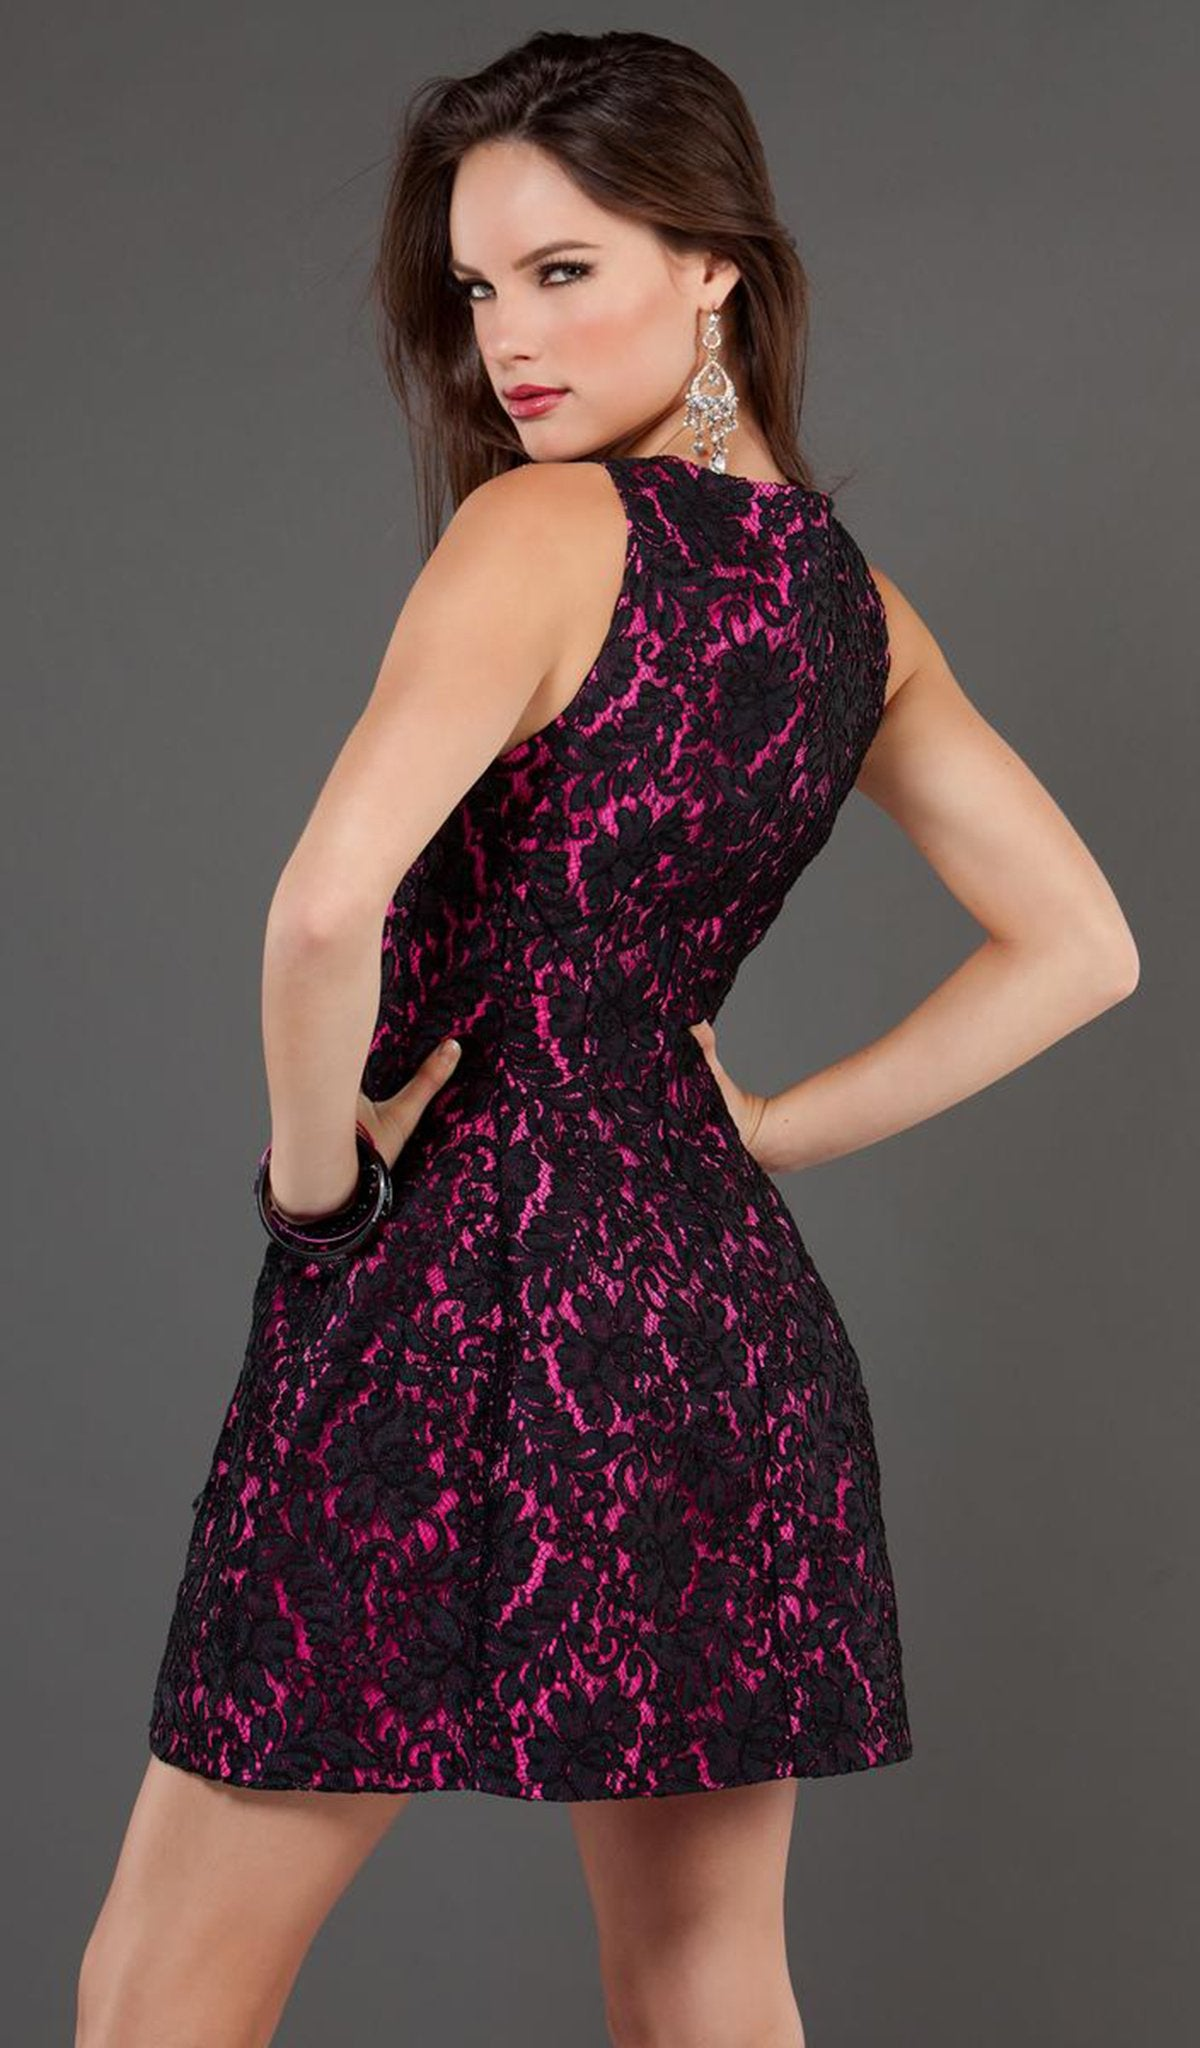 Jovani - 74156 Floral Patterned A Line Cocktail Dress in Black and Pink